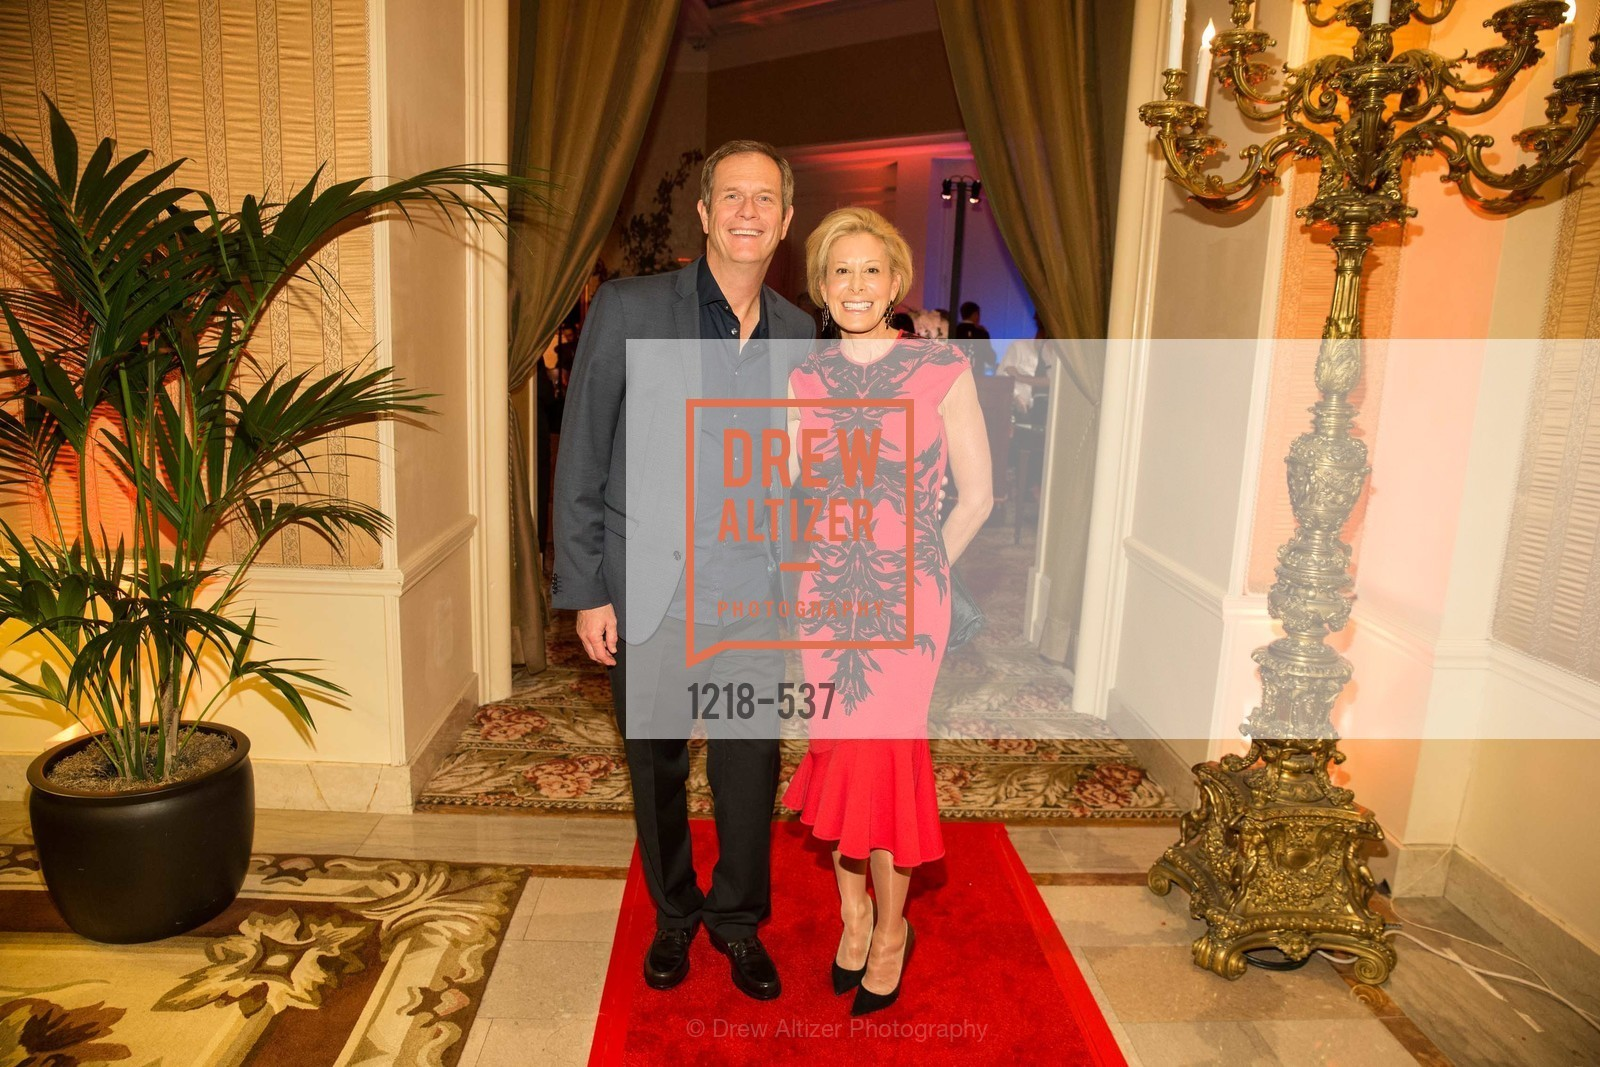 Rob Chestnut, Jillian Manus, TOP OF THE MARK'S 75TH Anniversary Party, US, November 6th, 2014,Drew Altizer, Drew Altizer Photography, full-service agency, private events, San Francisco photographer, photographer california